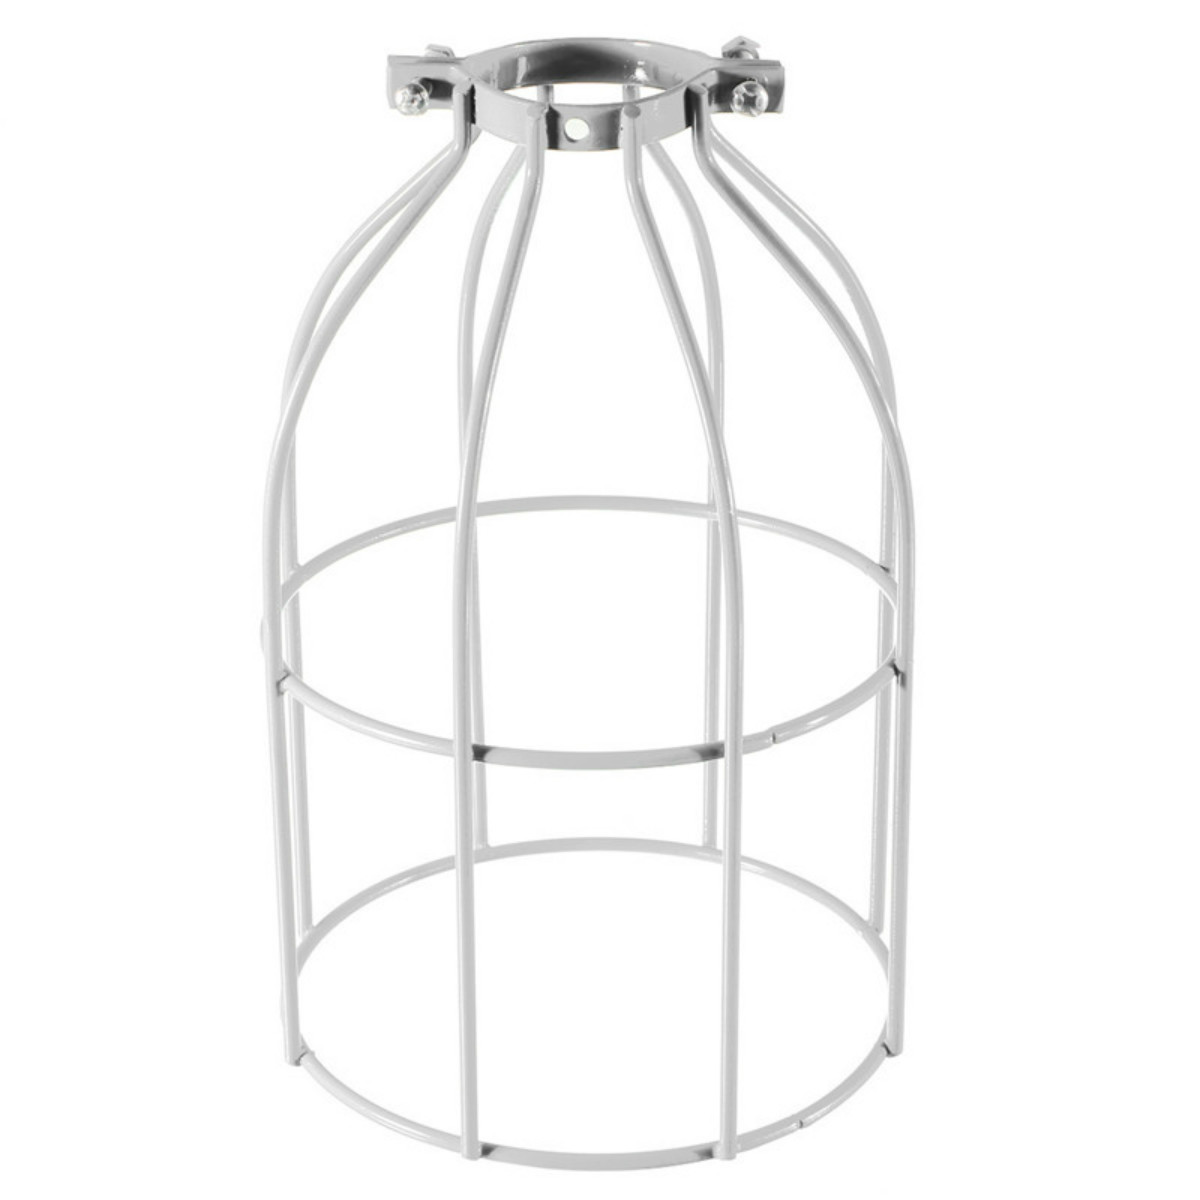 e27 vintage industriel retro m tal cage plafond abat jour ampoule edison lampe ebay. Black Bedroom Furniture Sets. Home Design Ideas